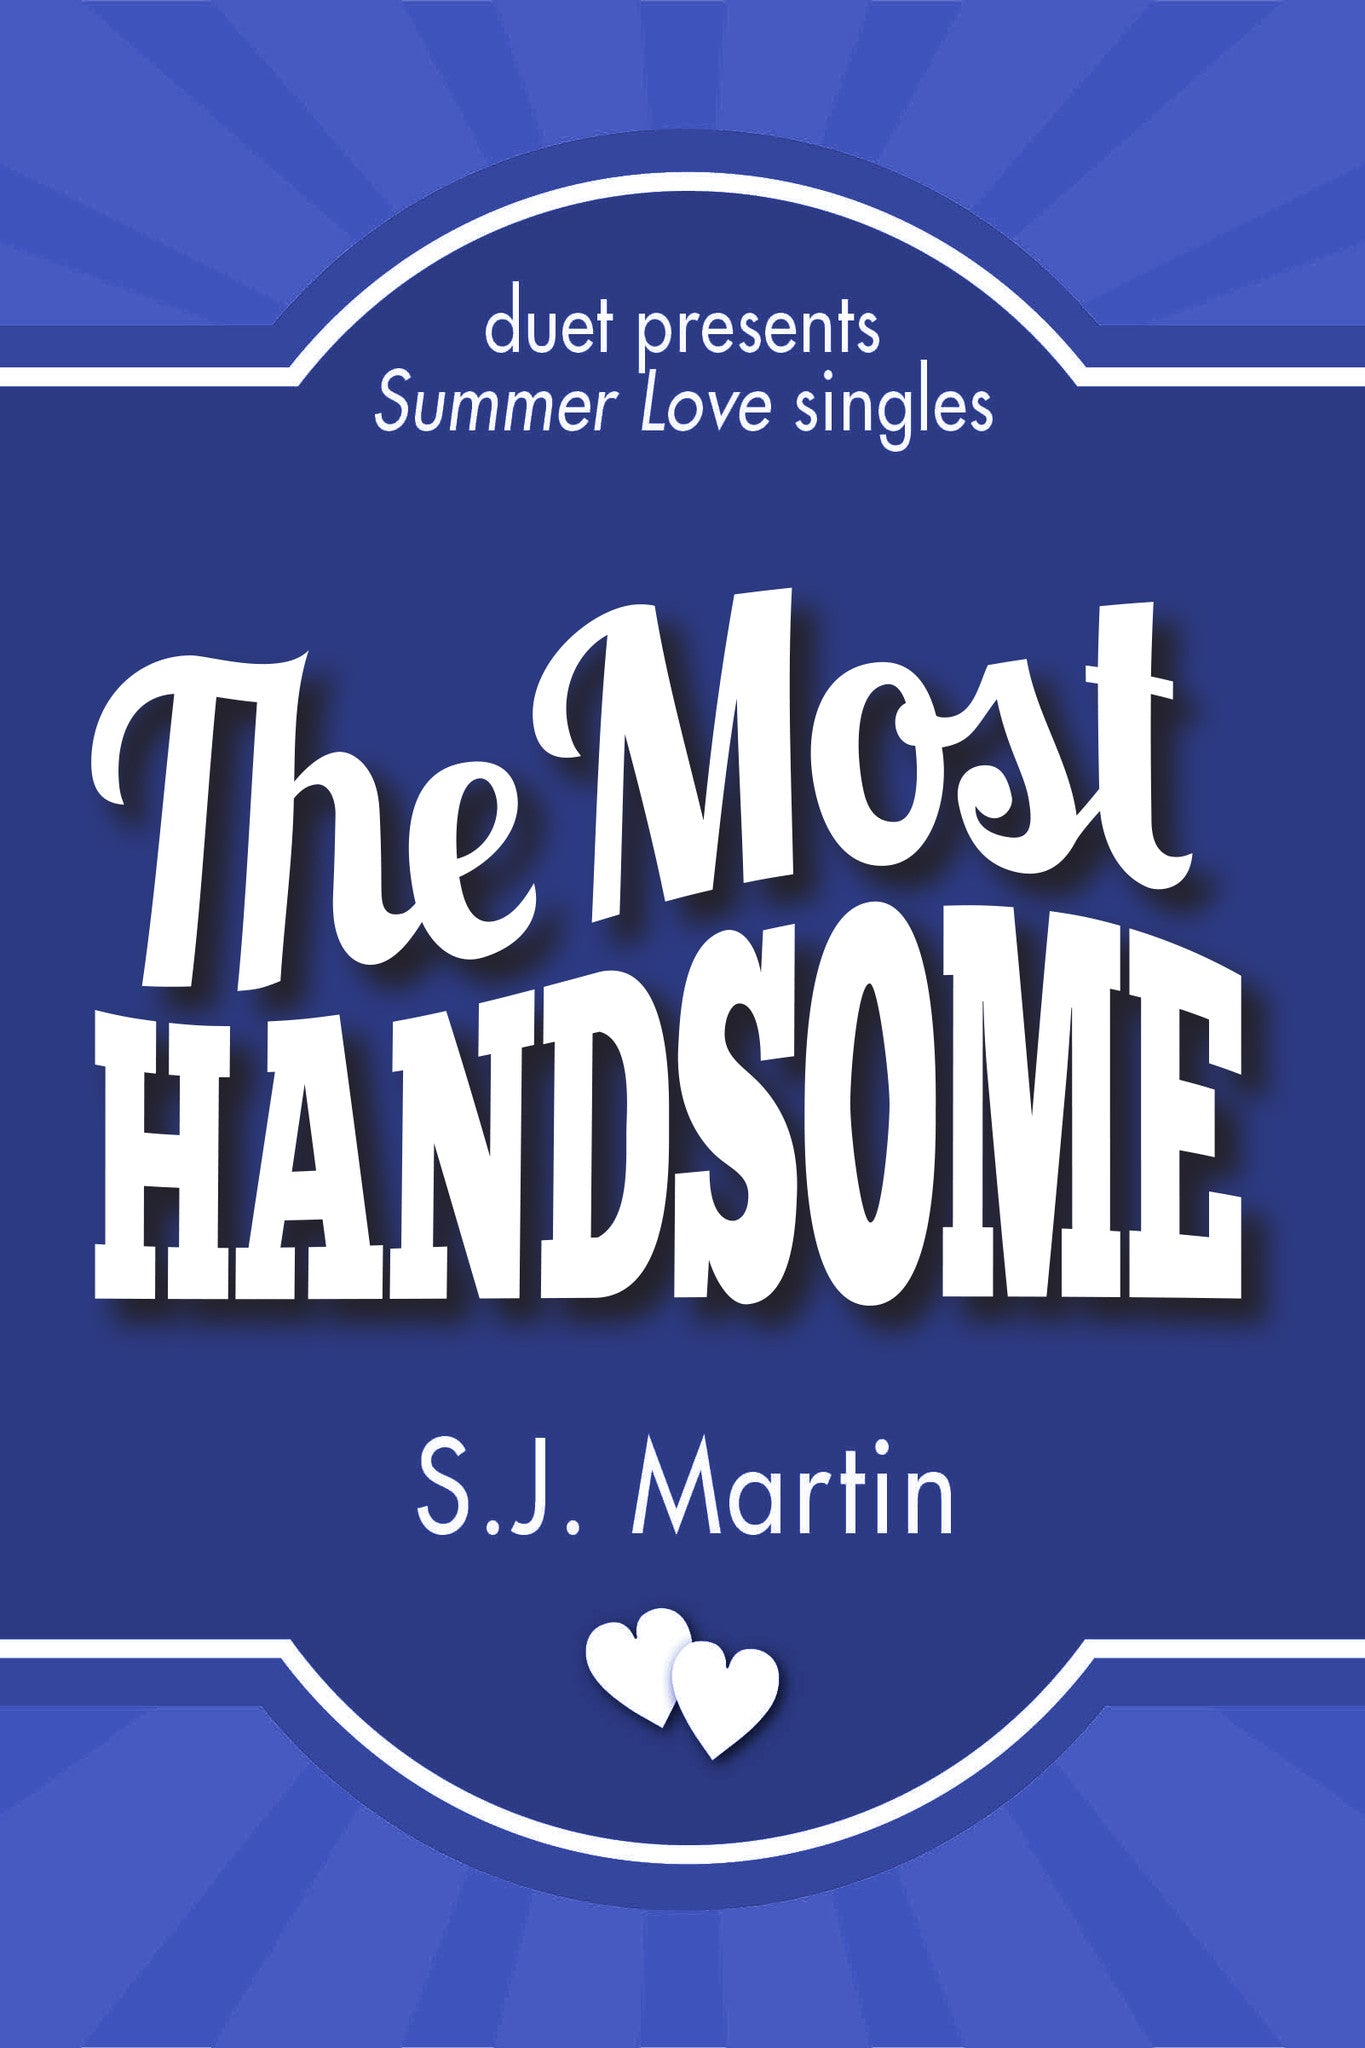 The Most Handsome by S.J. Martin